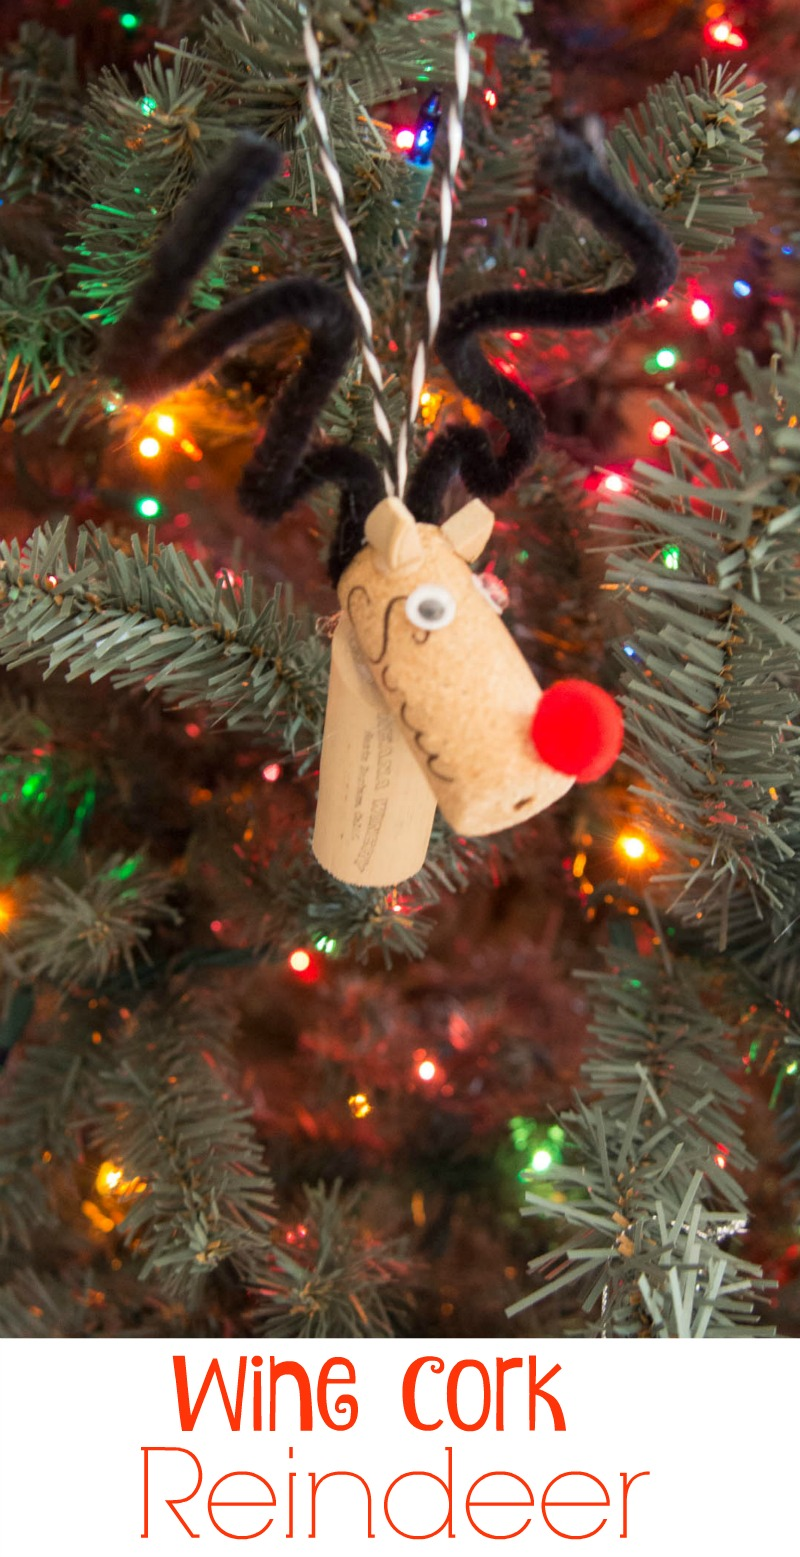 Ornaments made from wine corks - How To Make Wine Cork Reindeer Ornaments